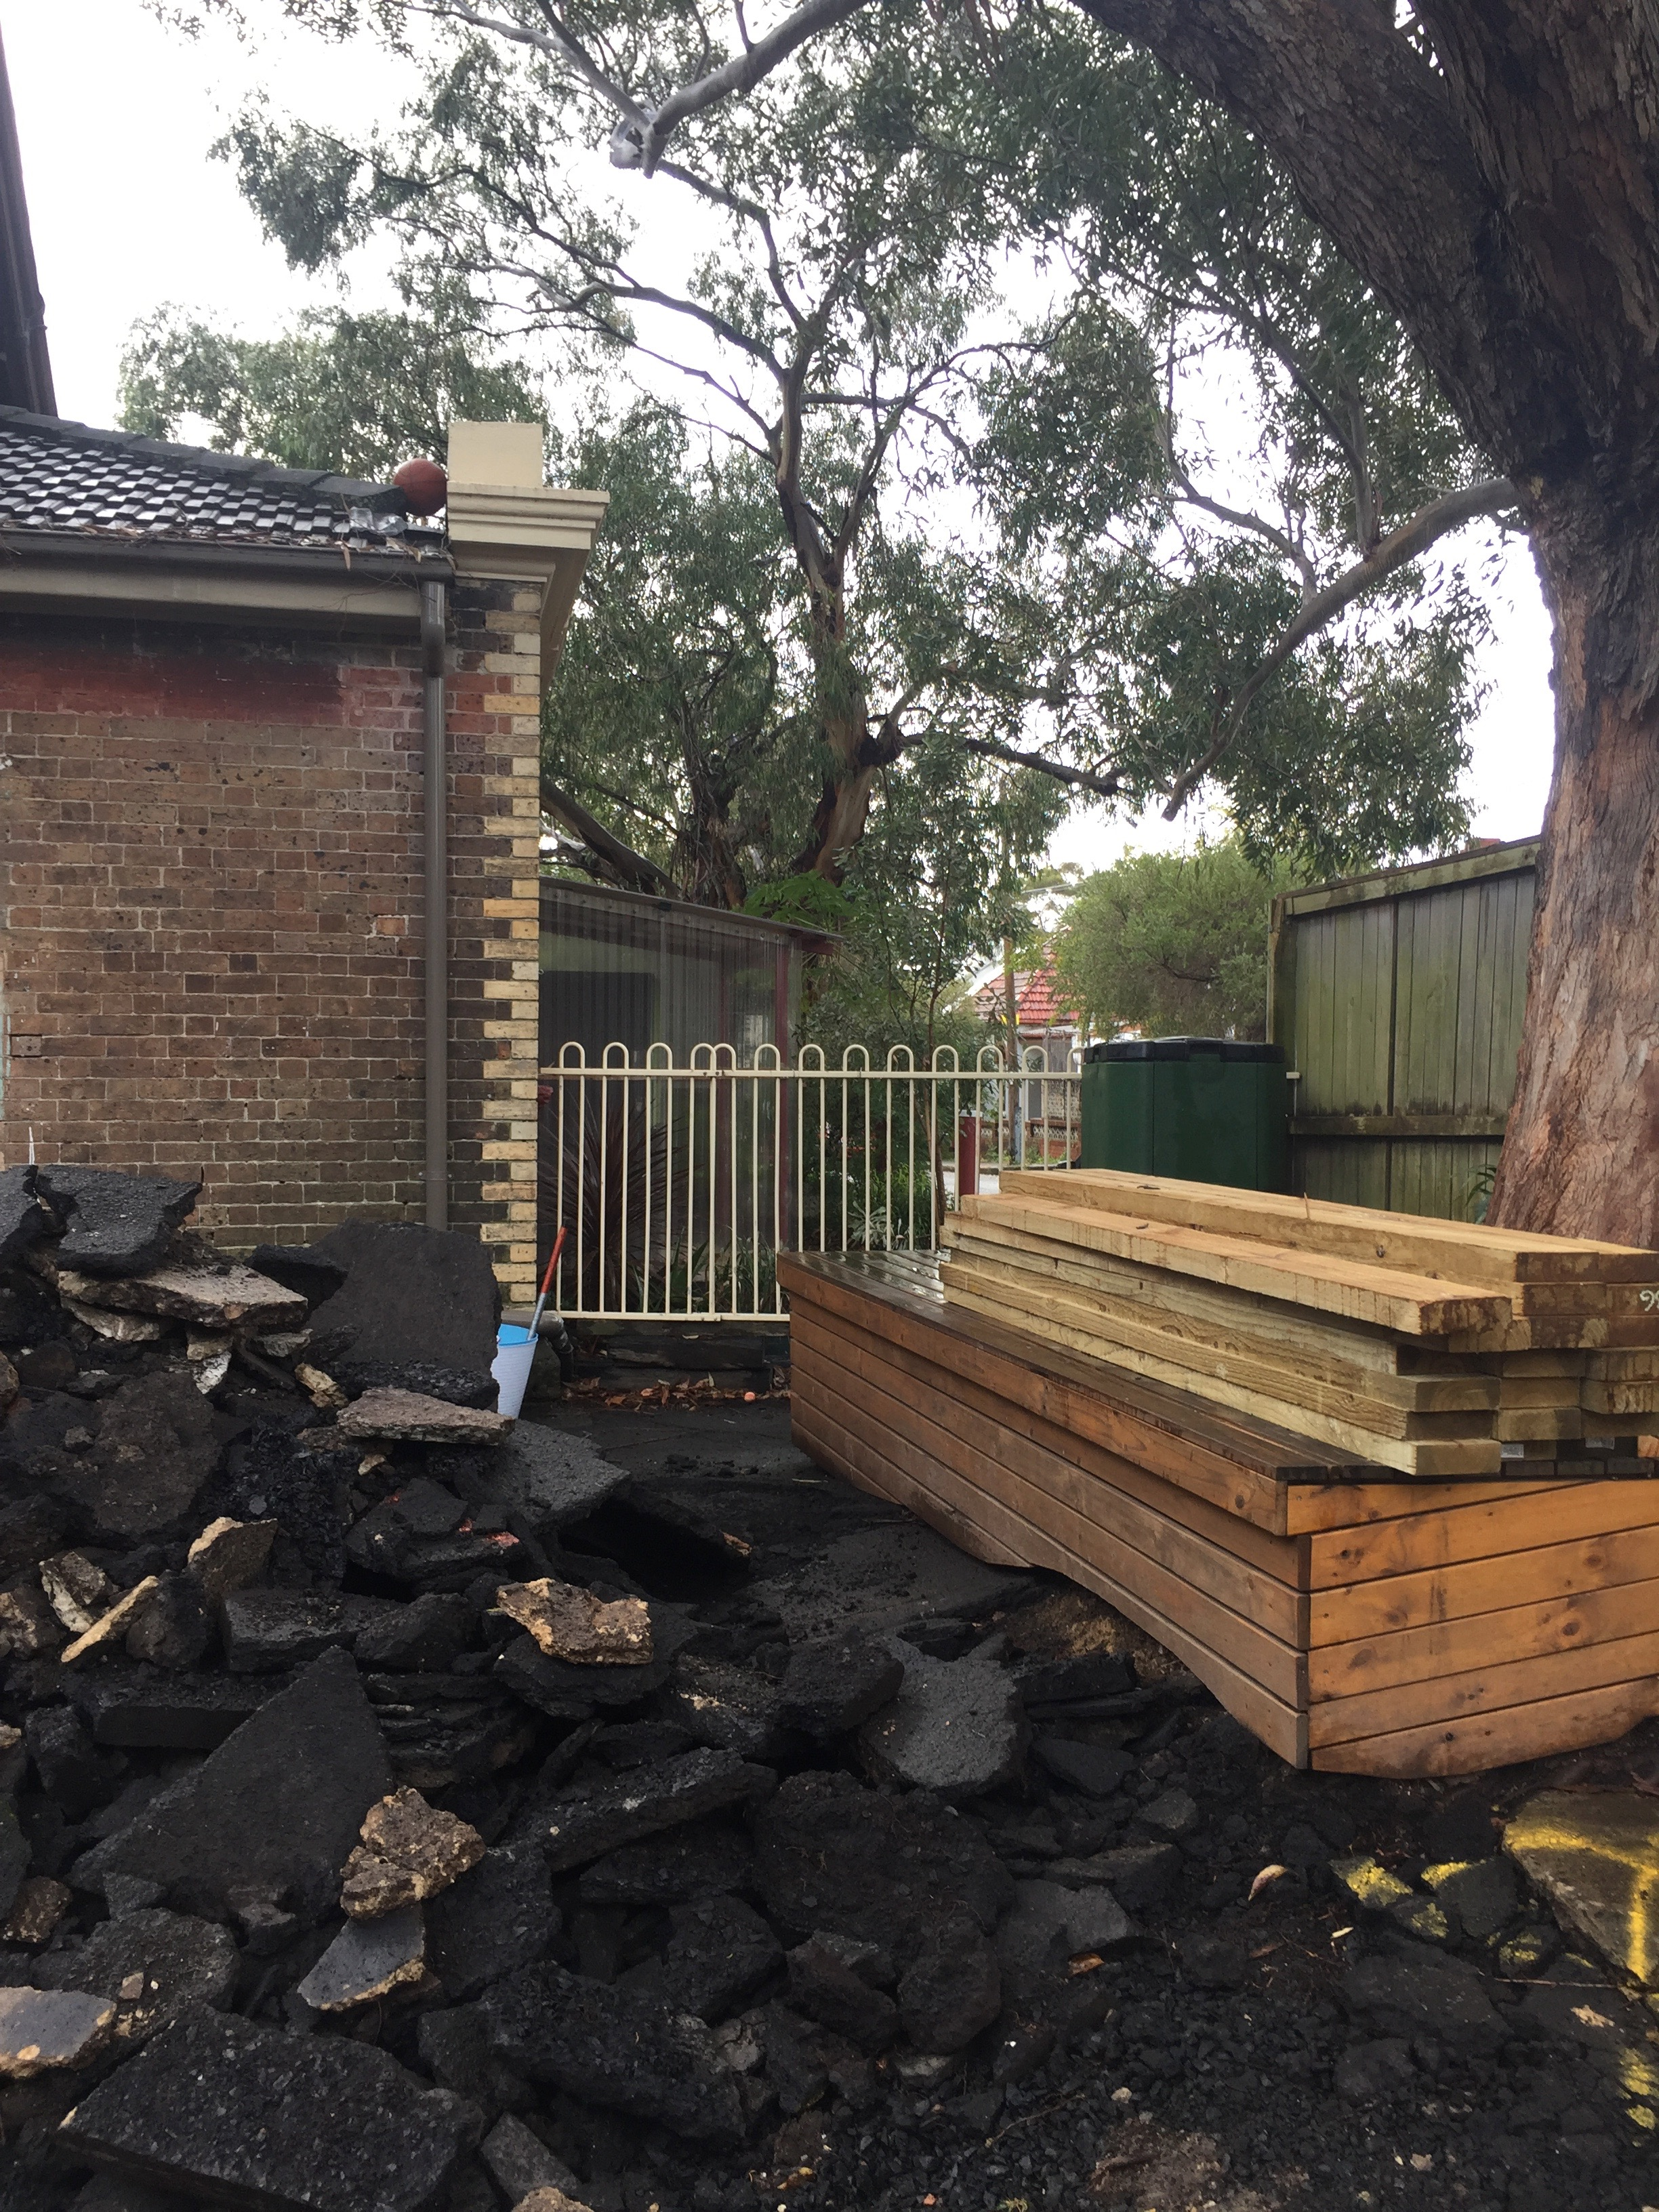 •  Black bitumen being removed from the playground as tree roots had buckled it looking for air and water, and water ponded in it during rain, and the black material was heating up the school